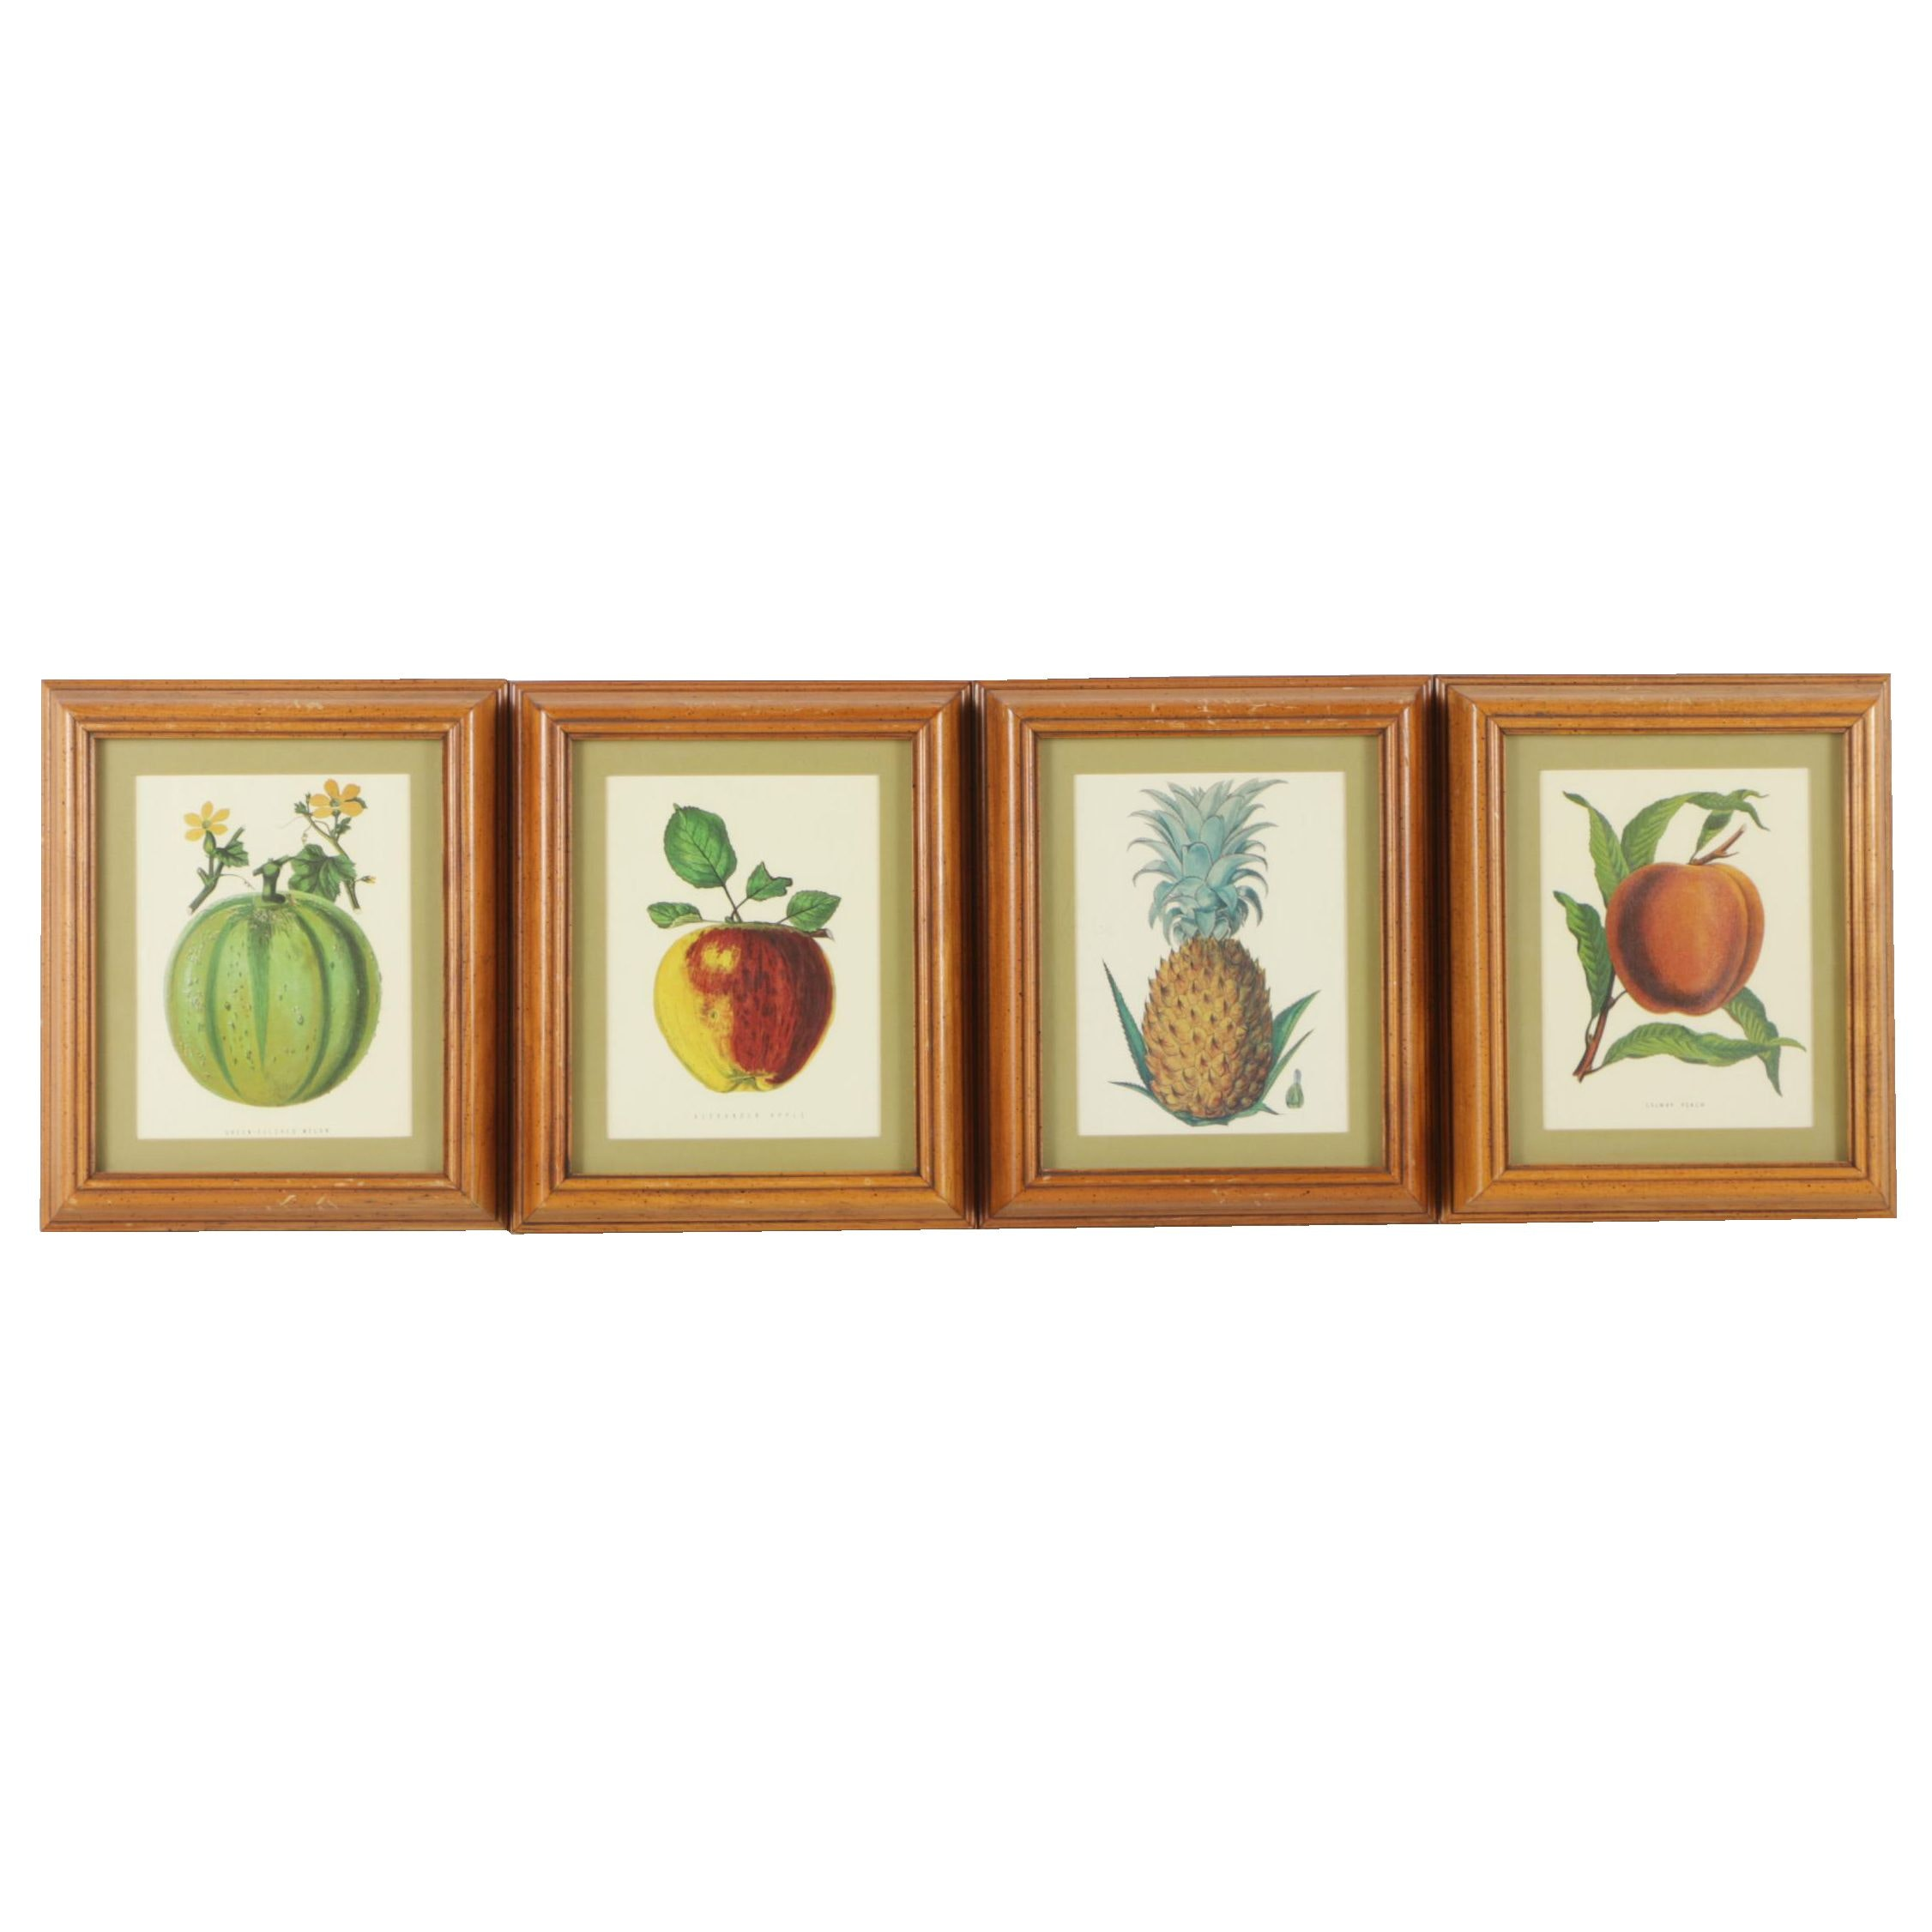 Offset Lithographs After William Mackenzie Fruit Studies